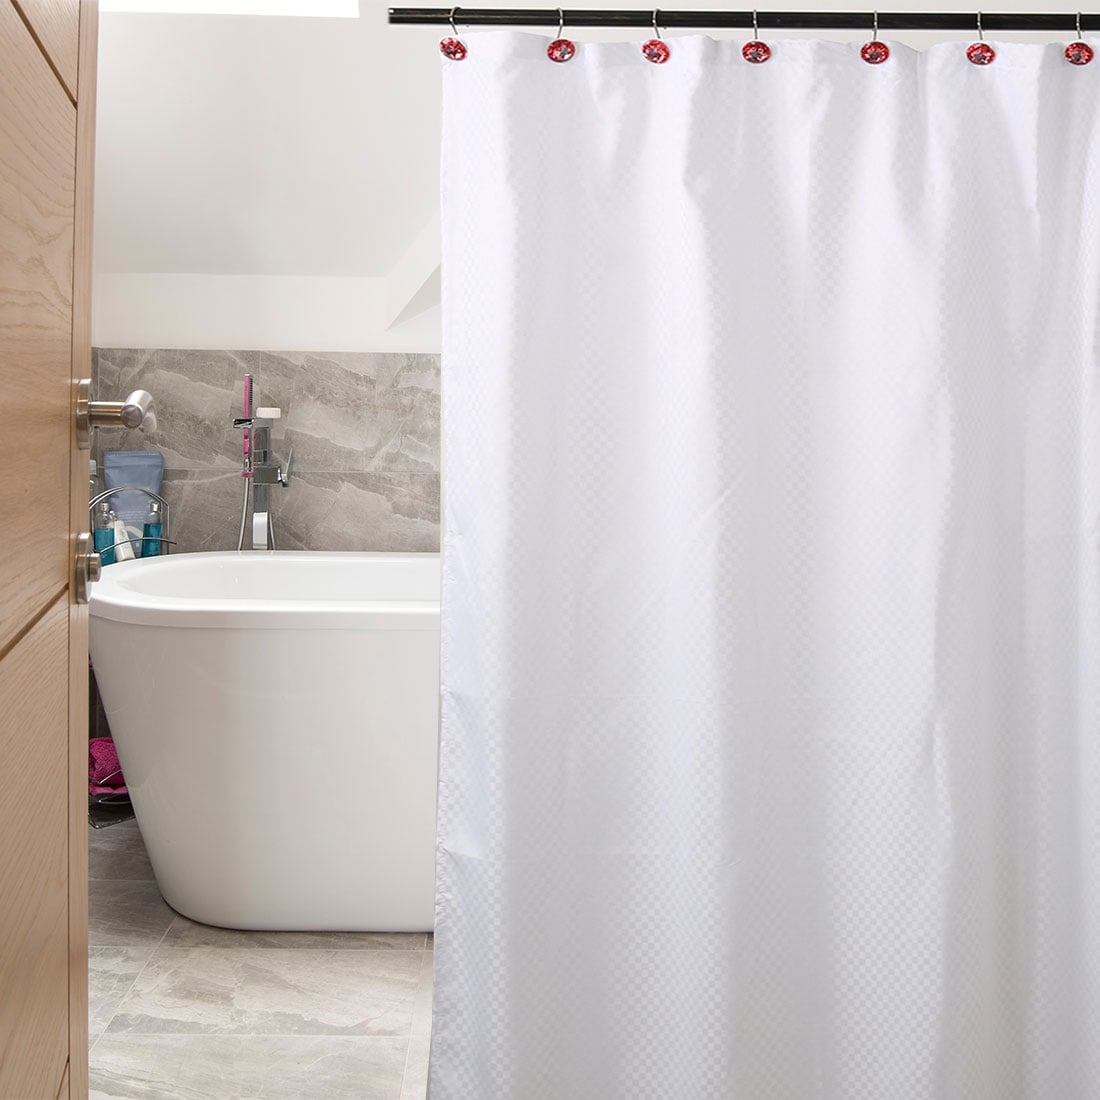 Acrylic Red Shower Curtain Hook Rolling Hooks Rings Clip Bathroom Decorative